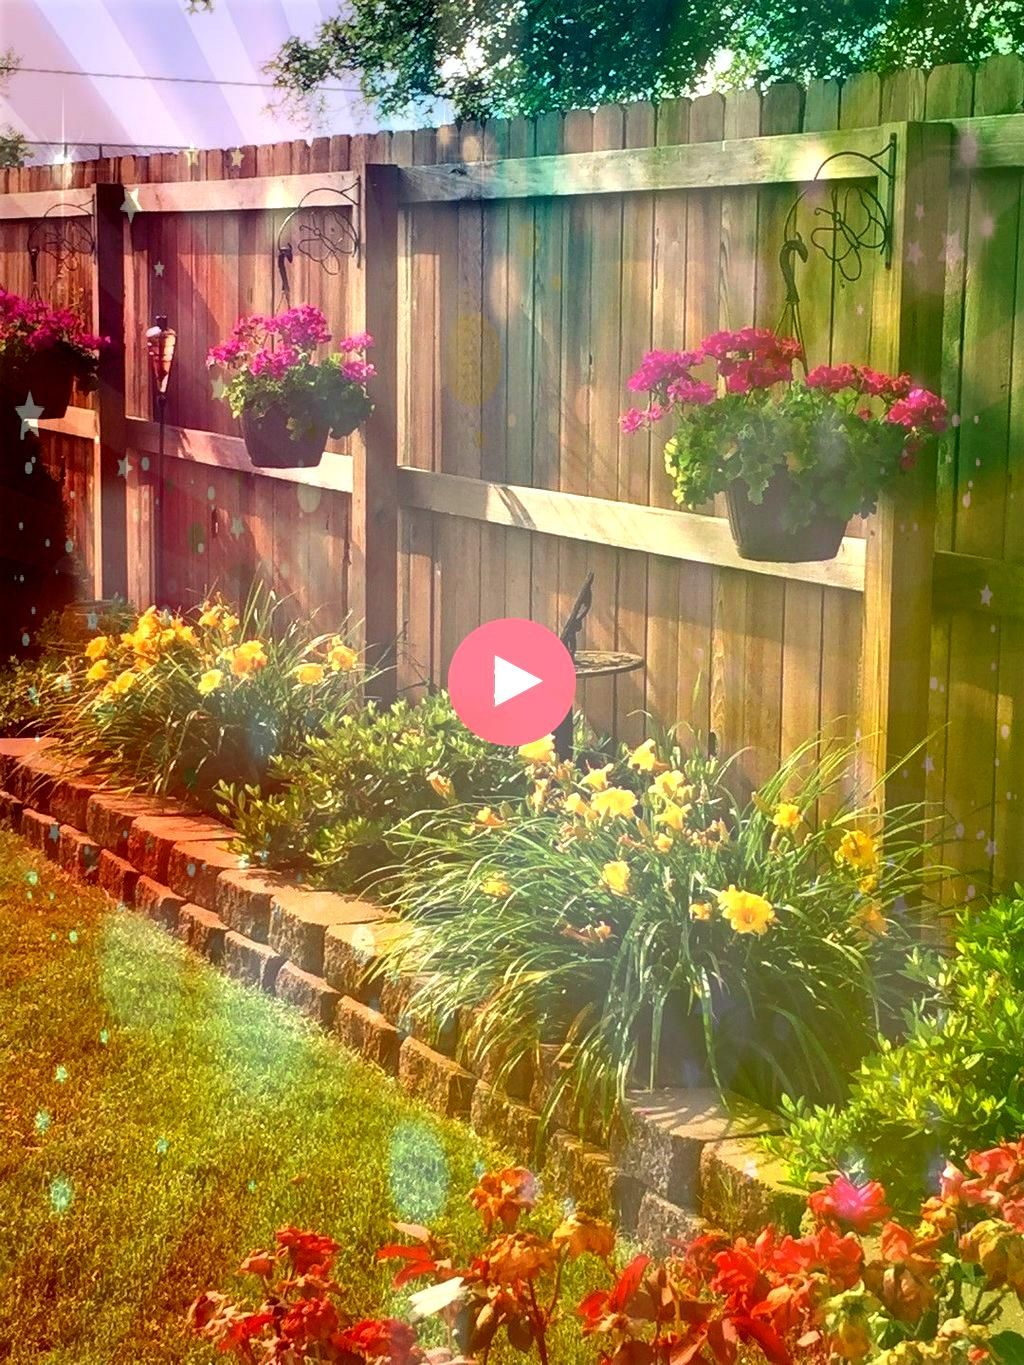 Amazing Garden Fence Decorating Ideas To Follow 48 Amazing Garden Fence Decorating Ideas To Follow48 Amazing Garden Fence Decorating Ideas To Follow How to make inexpensi...